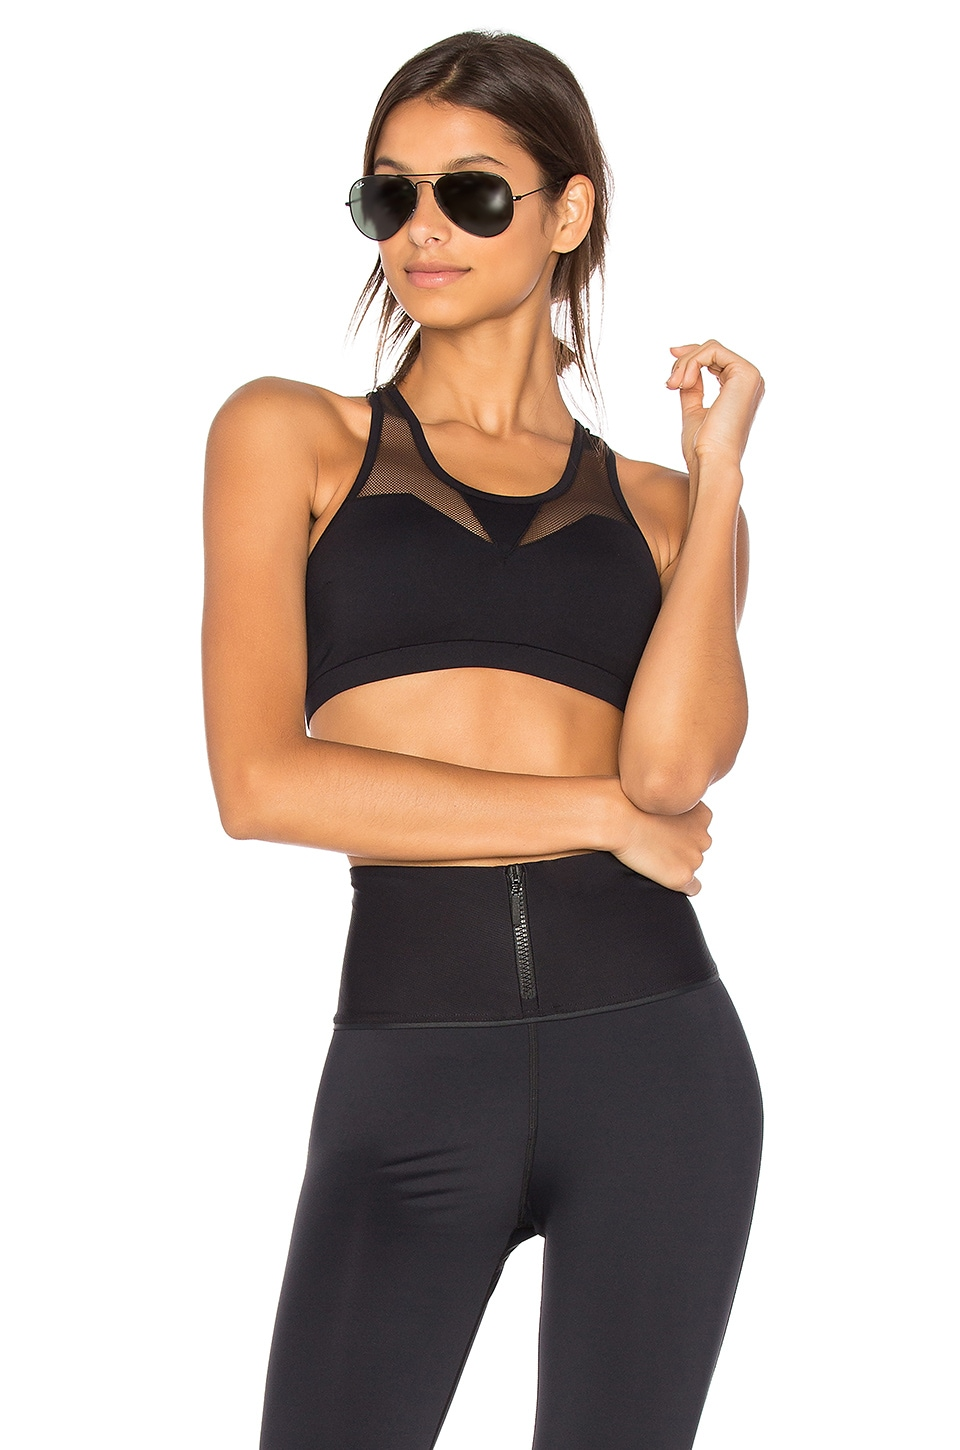 Metrix Sports Bra by Daquini